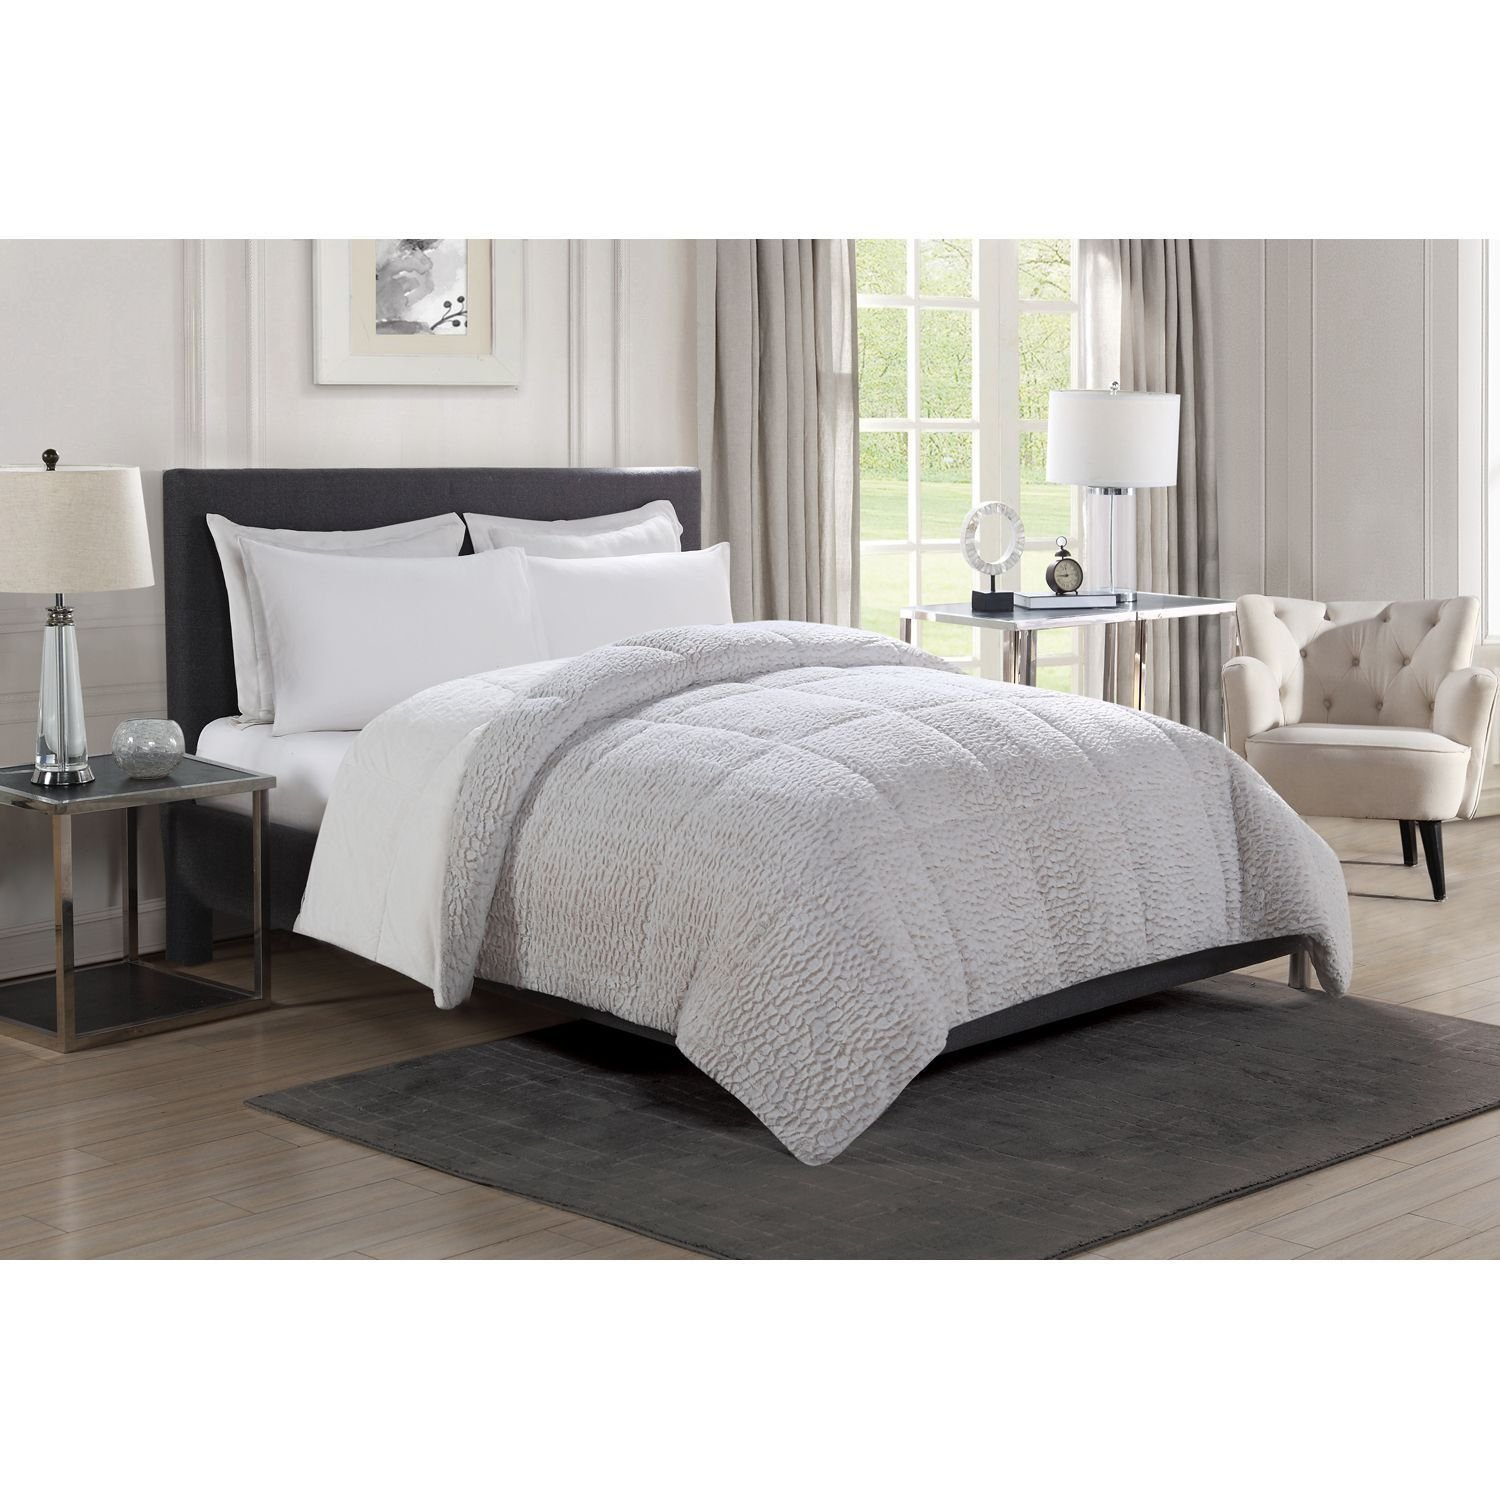 red alternative down comforter plaid fur and solid buffalo gray set black faux